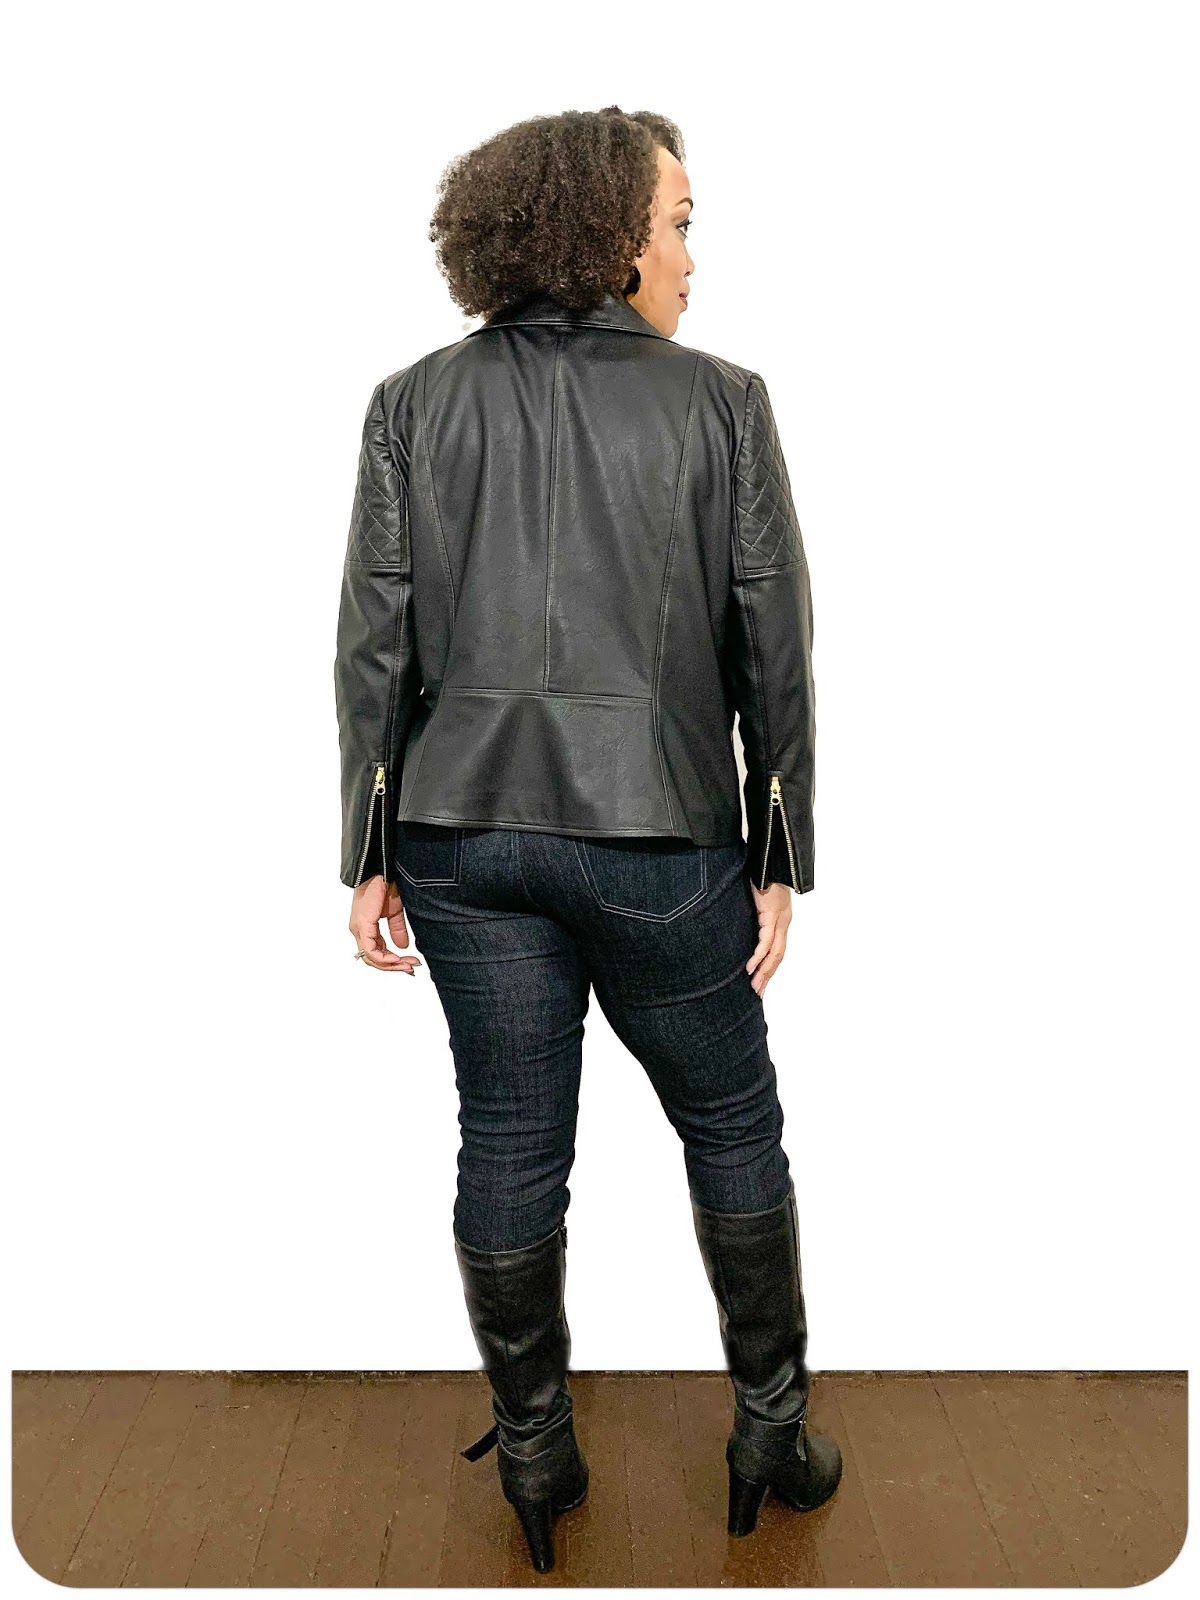 Learn to Sew a Moto Jacket -- A Step-by-Step Video Tutorial -- Erica Bunker DIY Style!